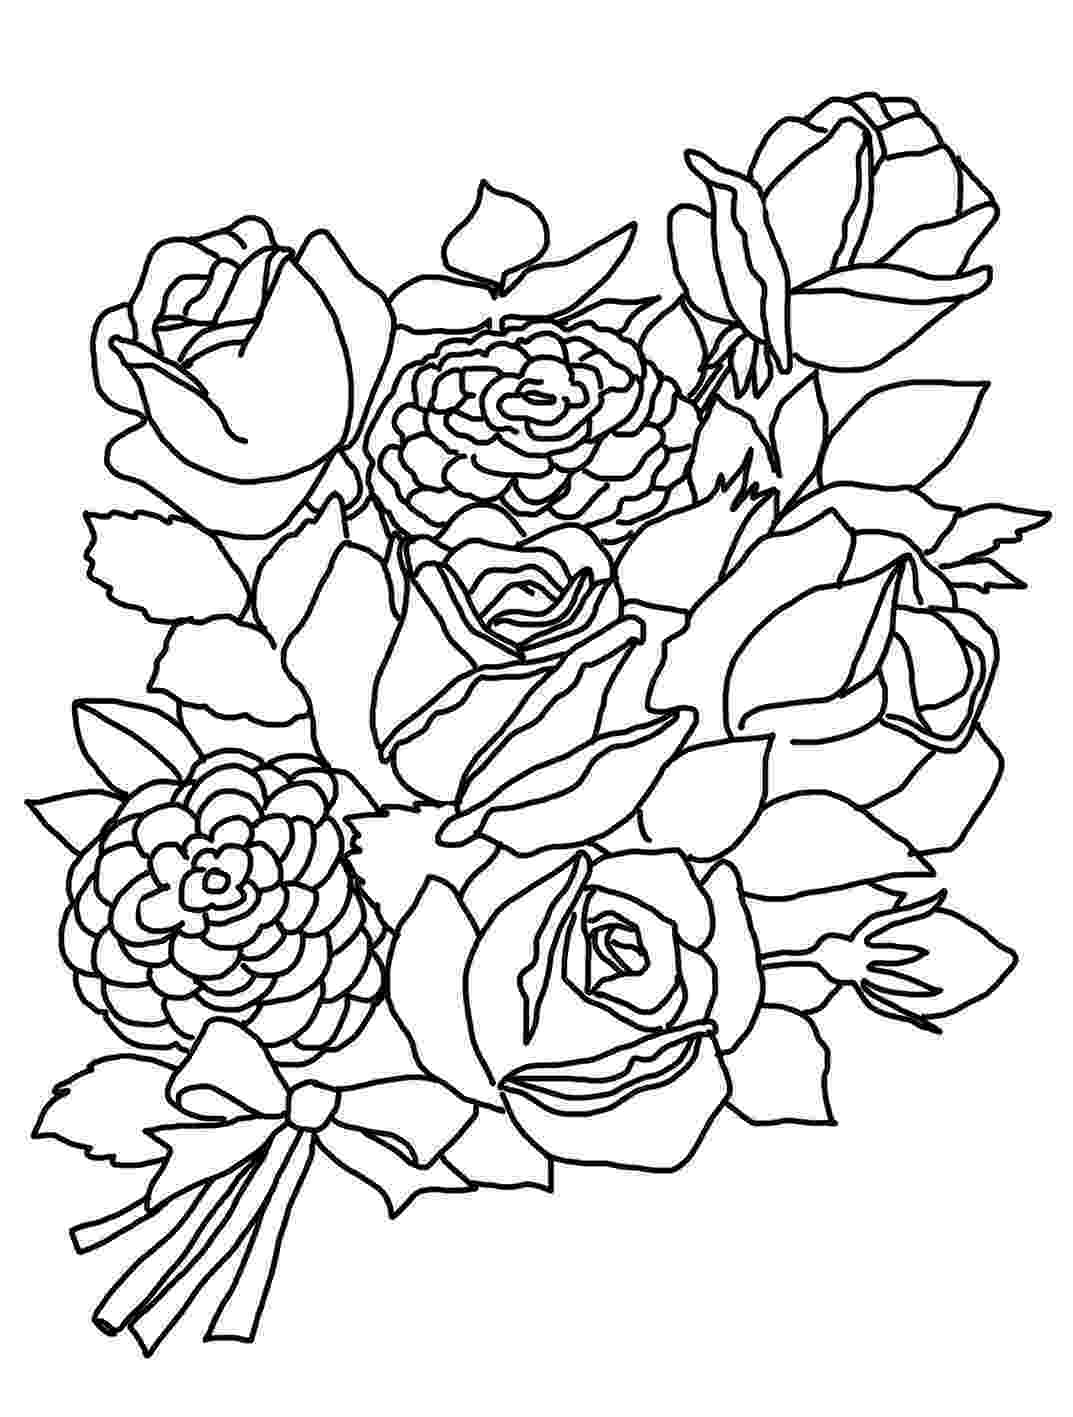 coloring page of flower simple flower coloring pages getcoloringpagescom of coloring flower page